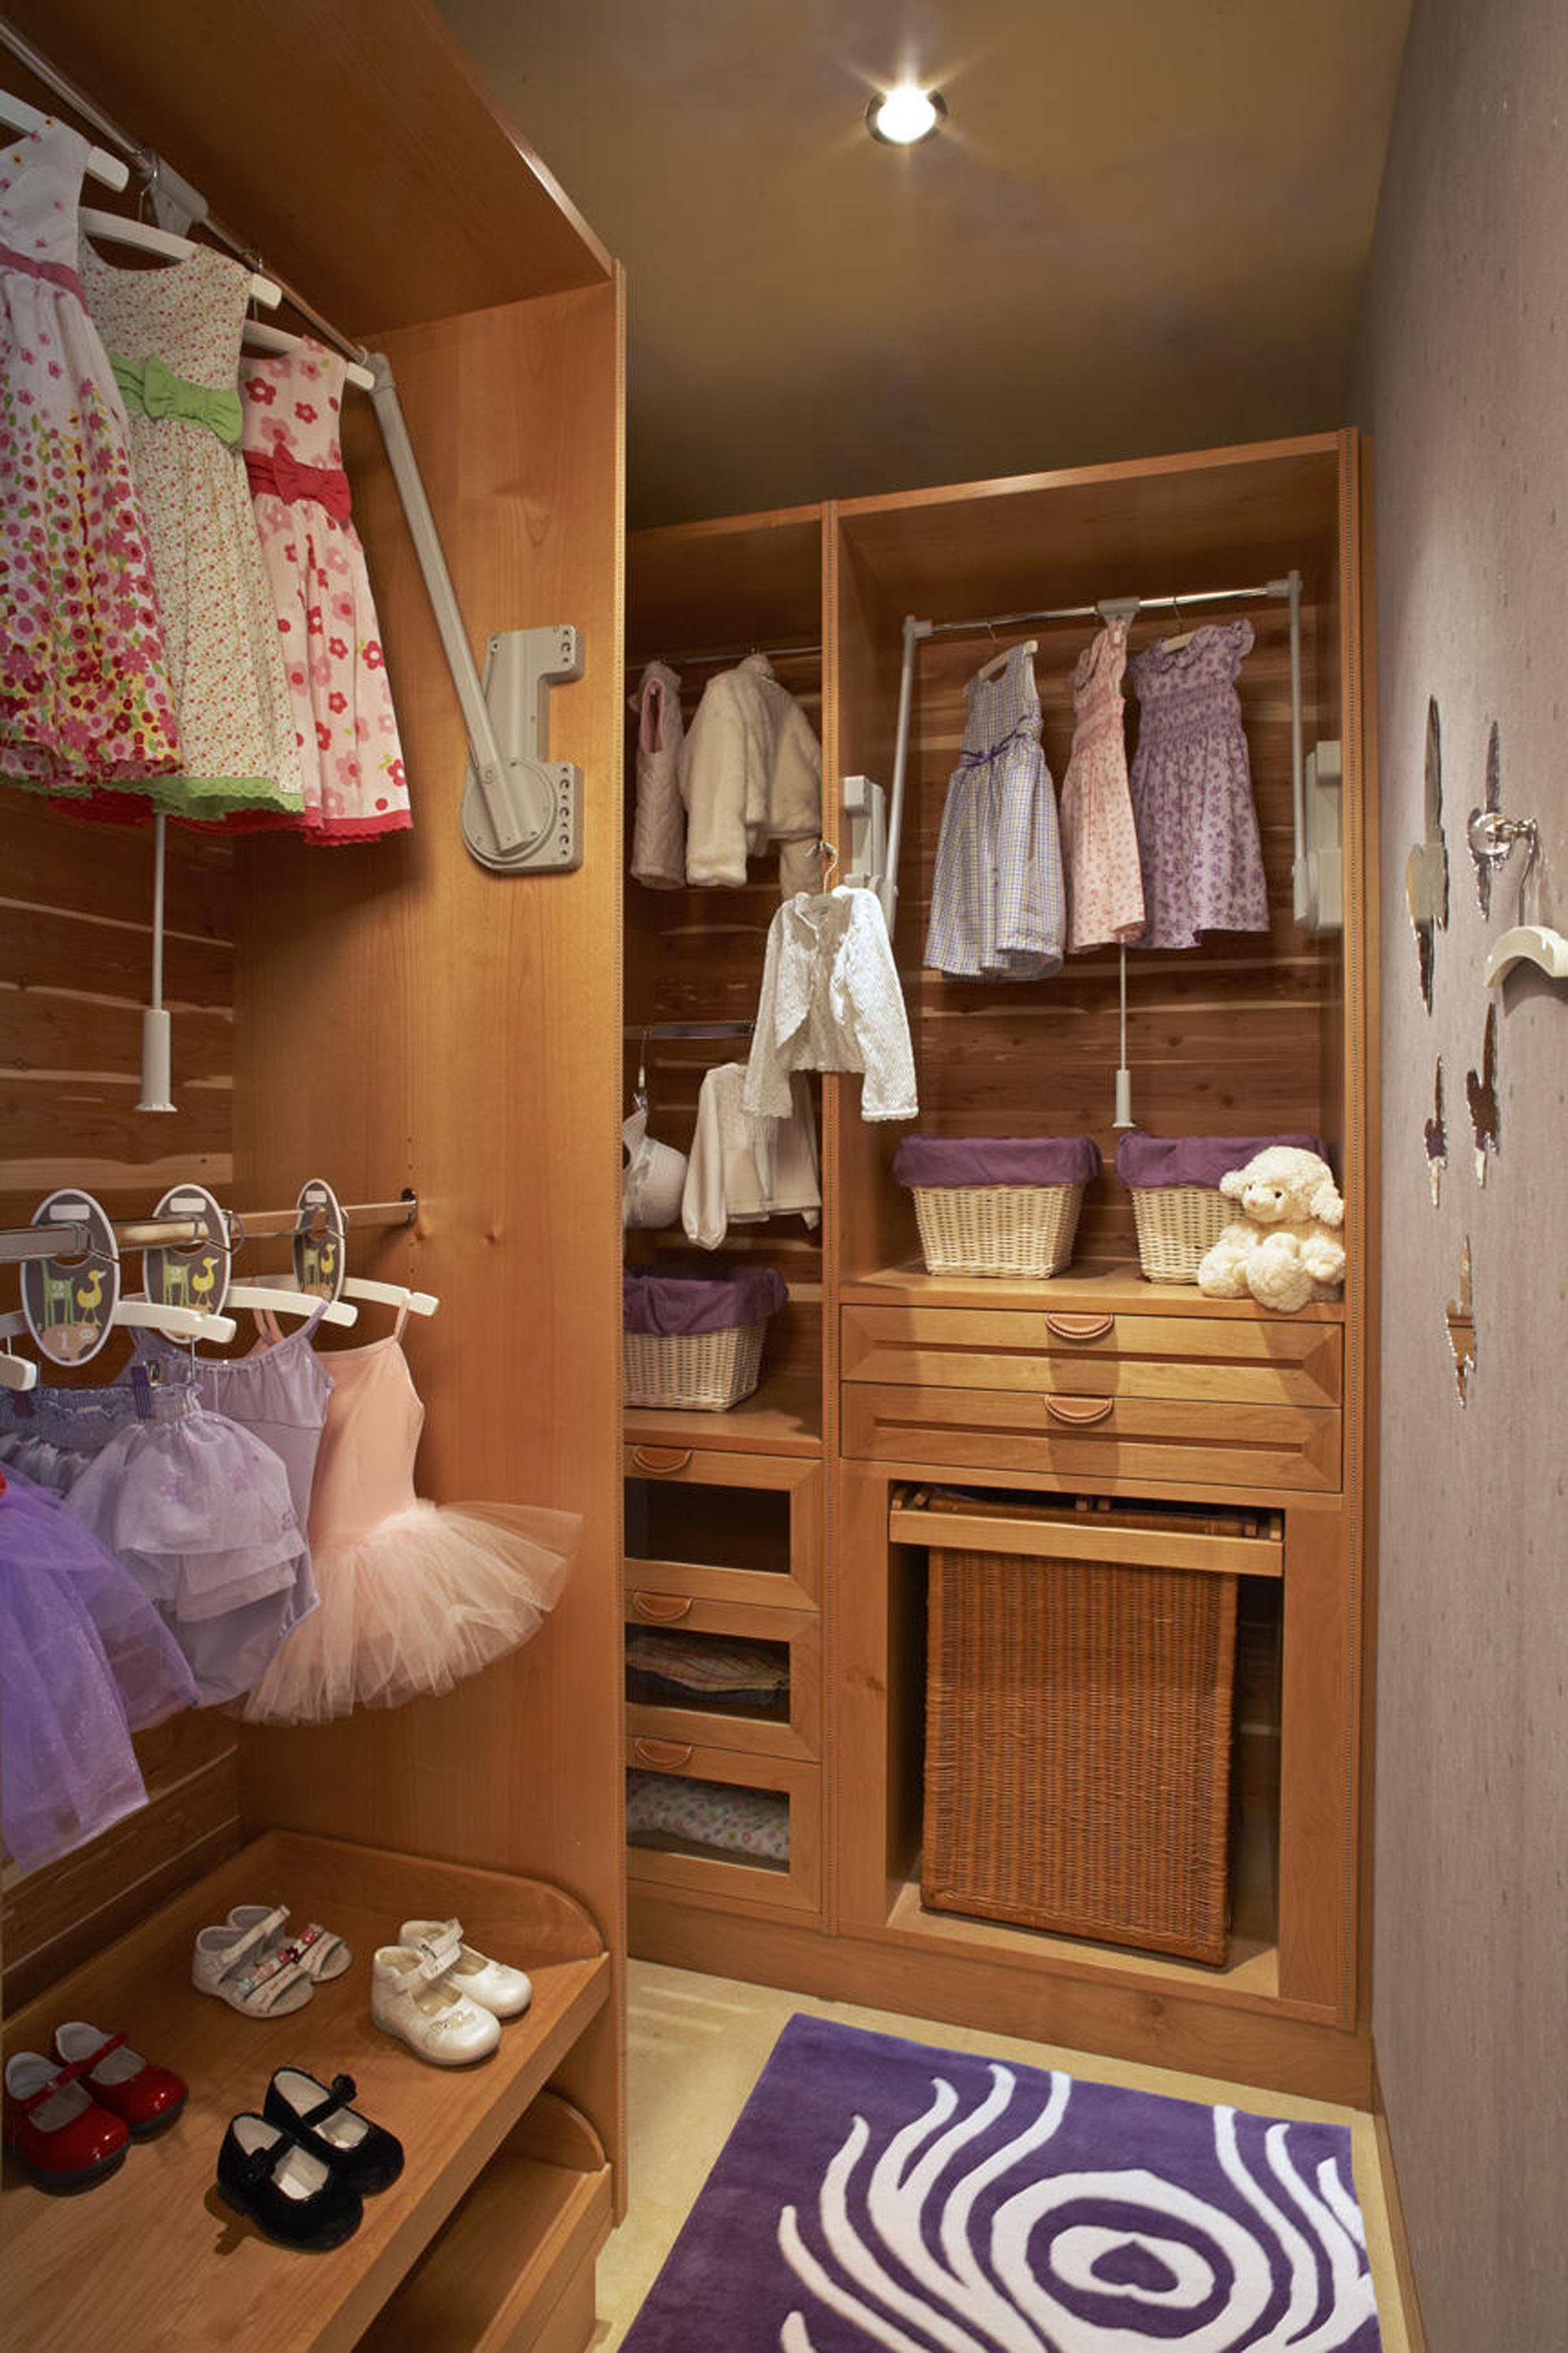 Diy Walk in Closet | California Closets Materials | Walk in Closet Shelving Ideas